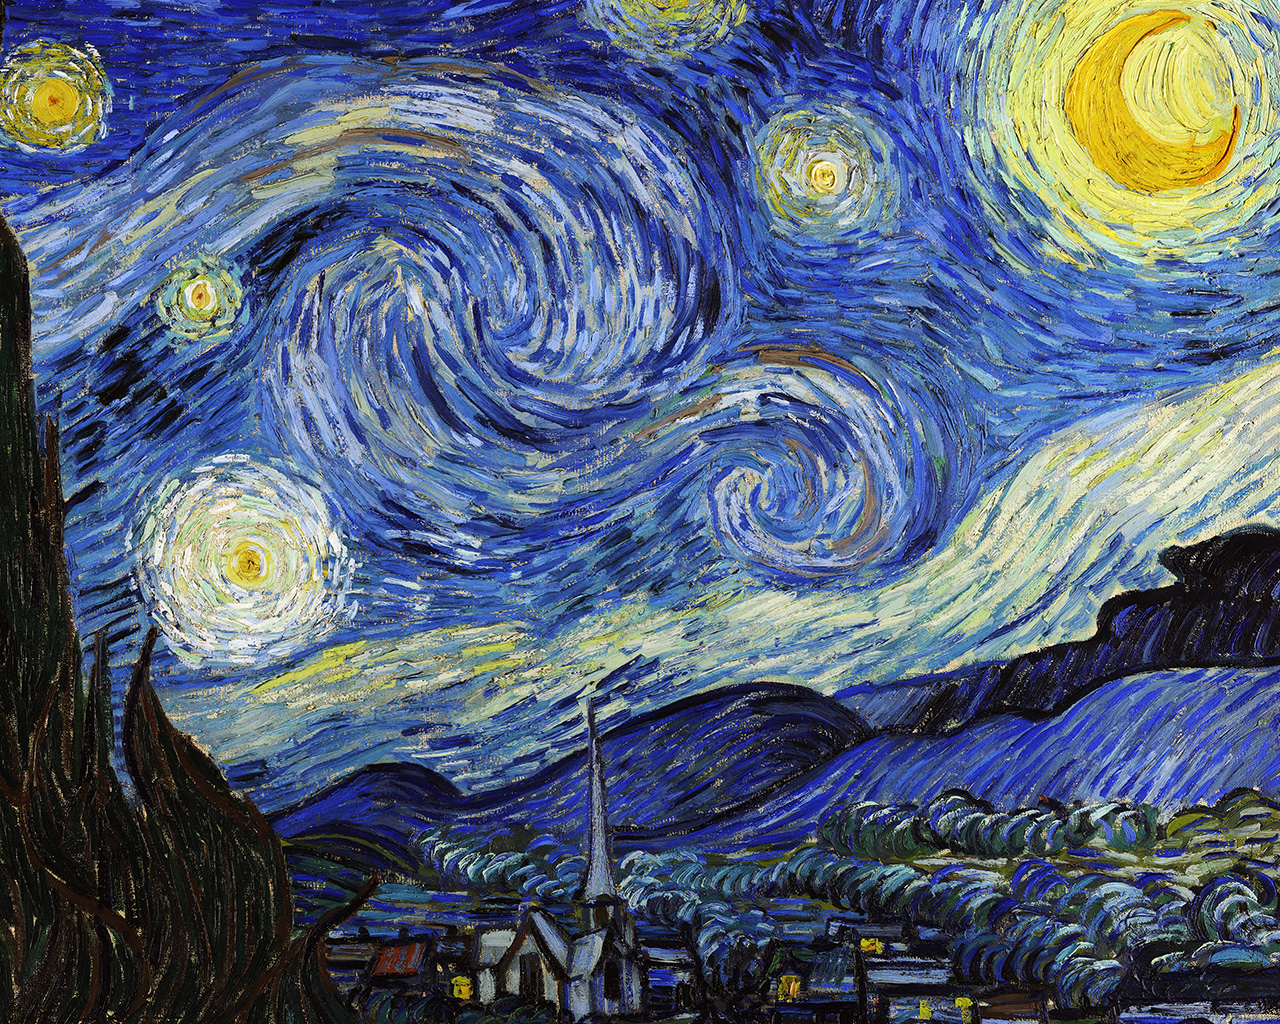 Van Gogh Starry Night Iphone Wallpaper 1440 X 900